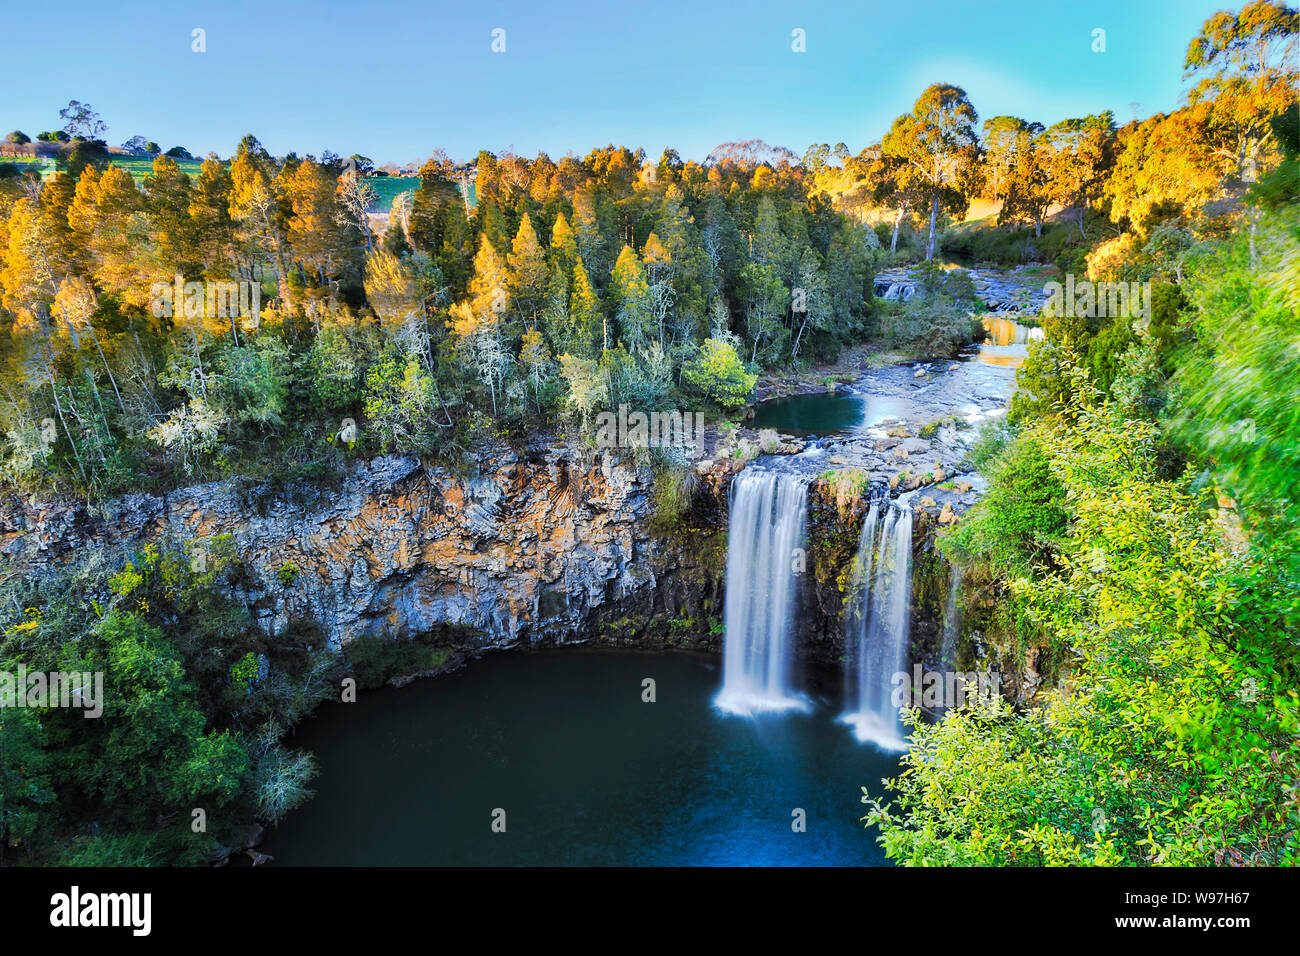 Elevated view over Dangar falls in Dorrigo National park near Dorrigo town in morning soft light with smooth water stream falling down to rock pool cu Stock Photo